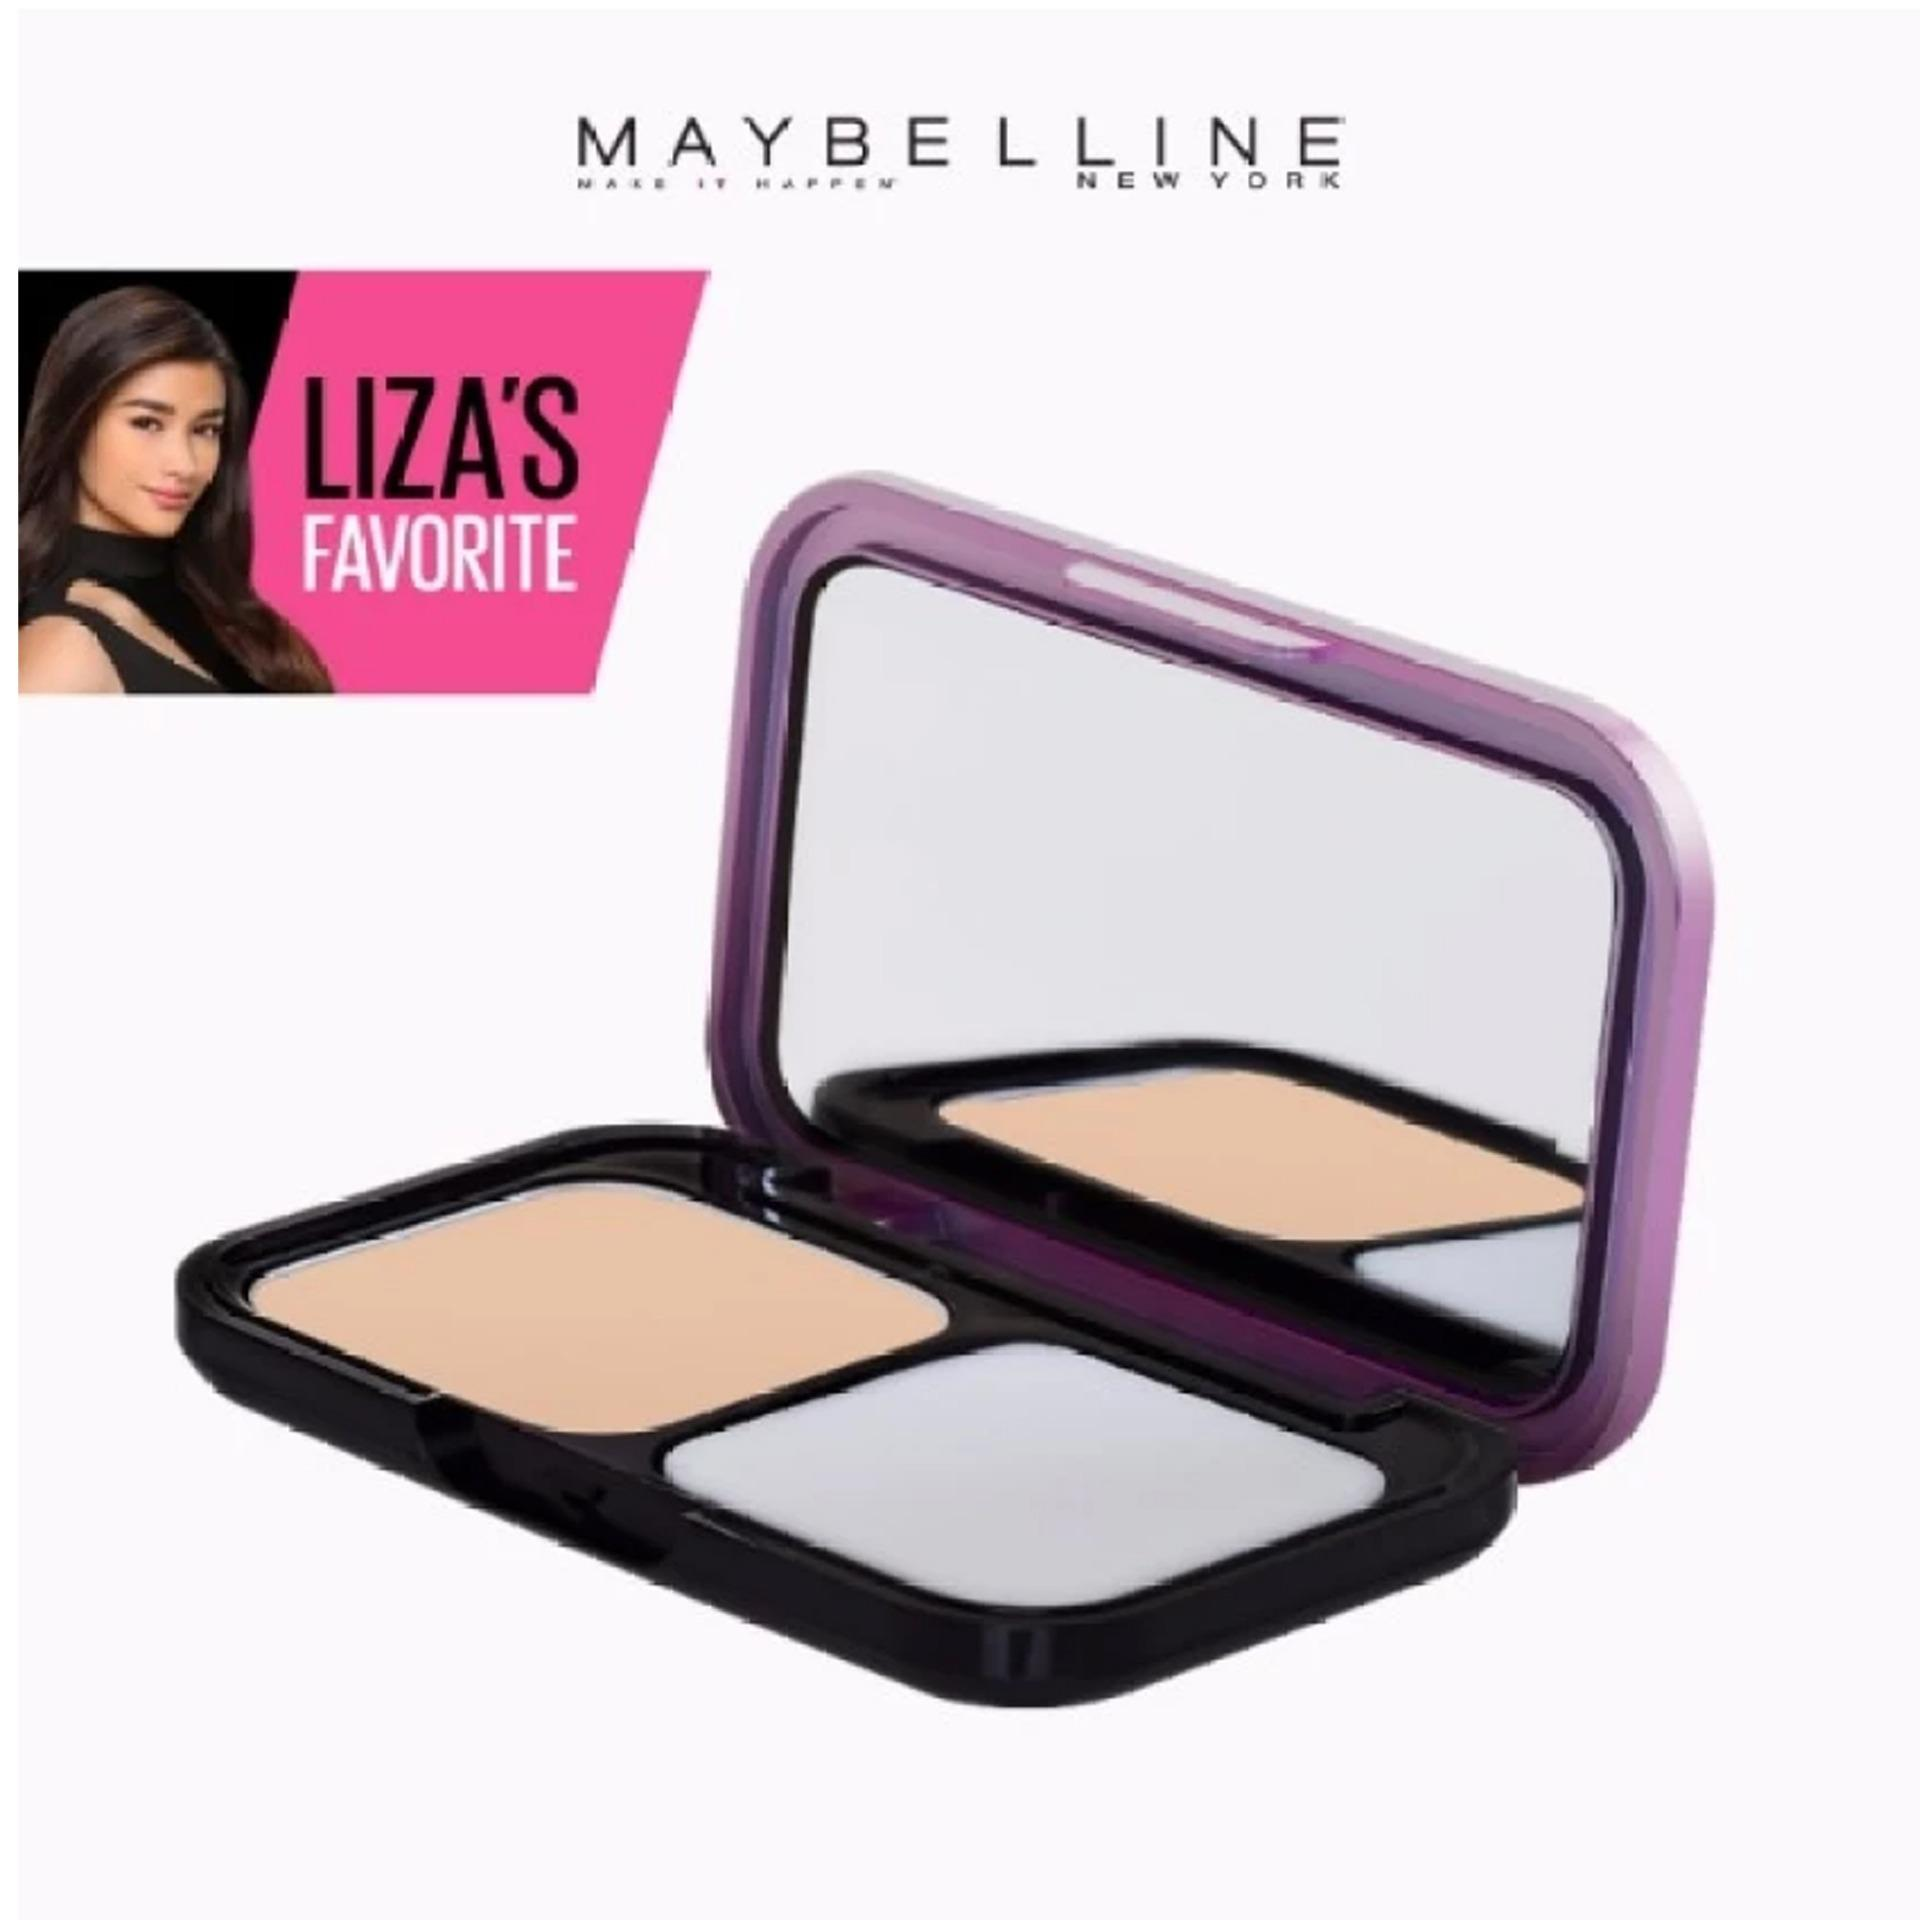 Clearsmooth All In One Powder Foundation - 02 Nude Beige SPF32 PA+++ [Lizas Powder] by Maybelline Back to Basics Foundation Philippines